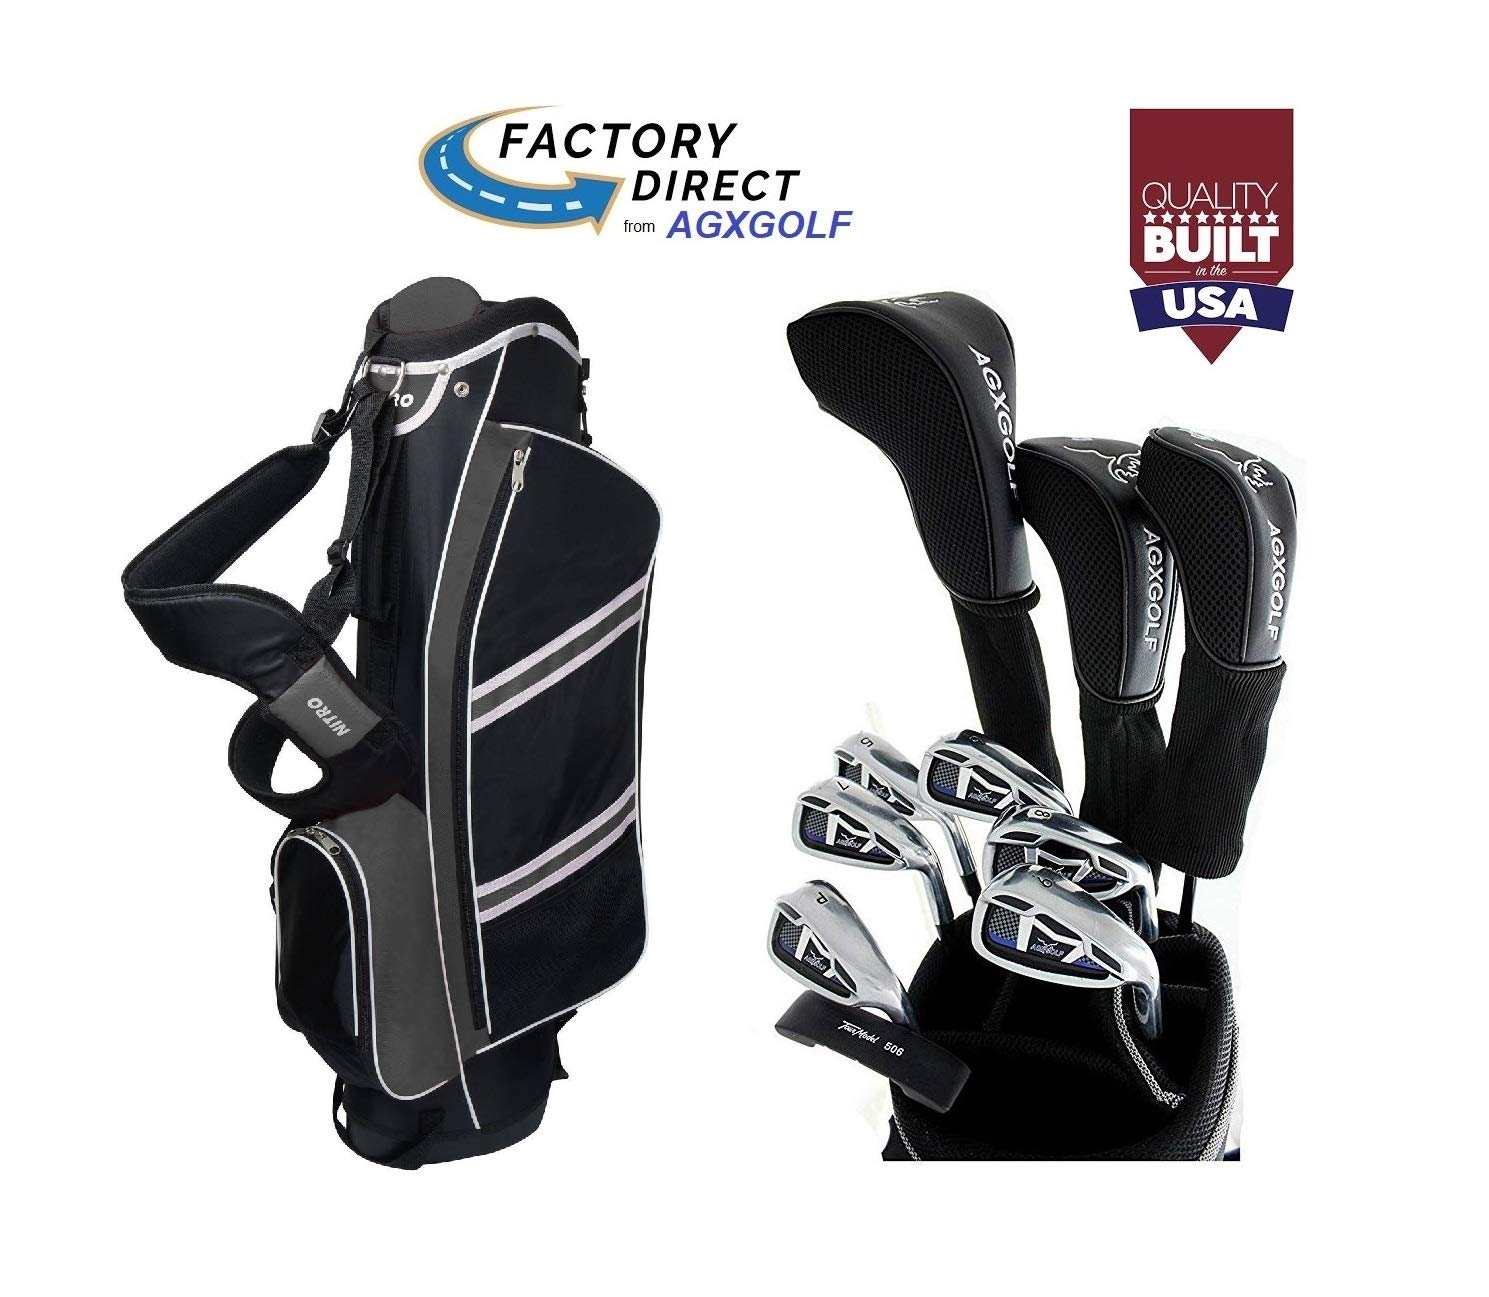 AGXGOLF Senior Men s Magnum Edition Complete Golf Club Set w Stand Bag, 460cc Driver, 3 Wood, Hybrid, 5-9 Irons, Wedge Right Hand Cadet, Regular or Tall Lengths Built in The USA